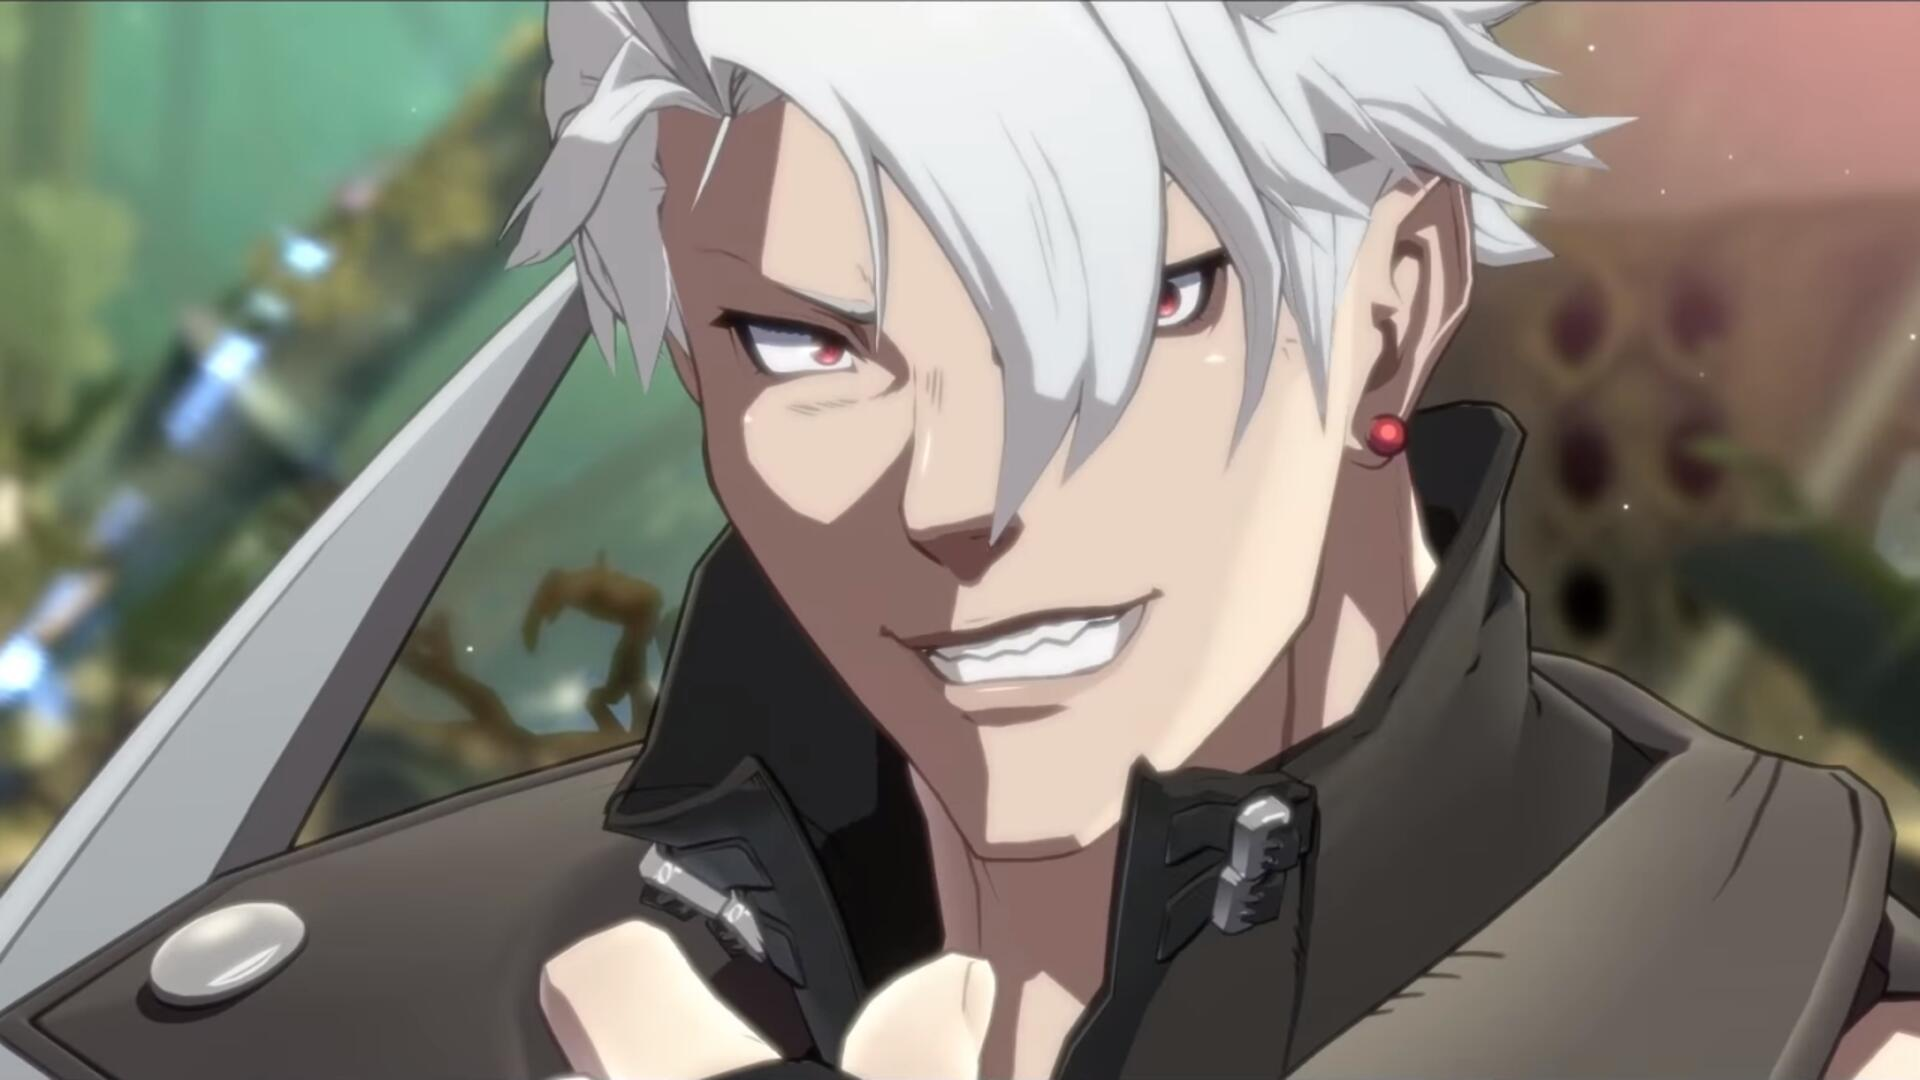 Guilty Gear 2020's First Gameplay is Receiving Mixed Reactions